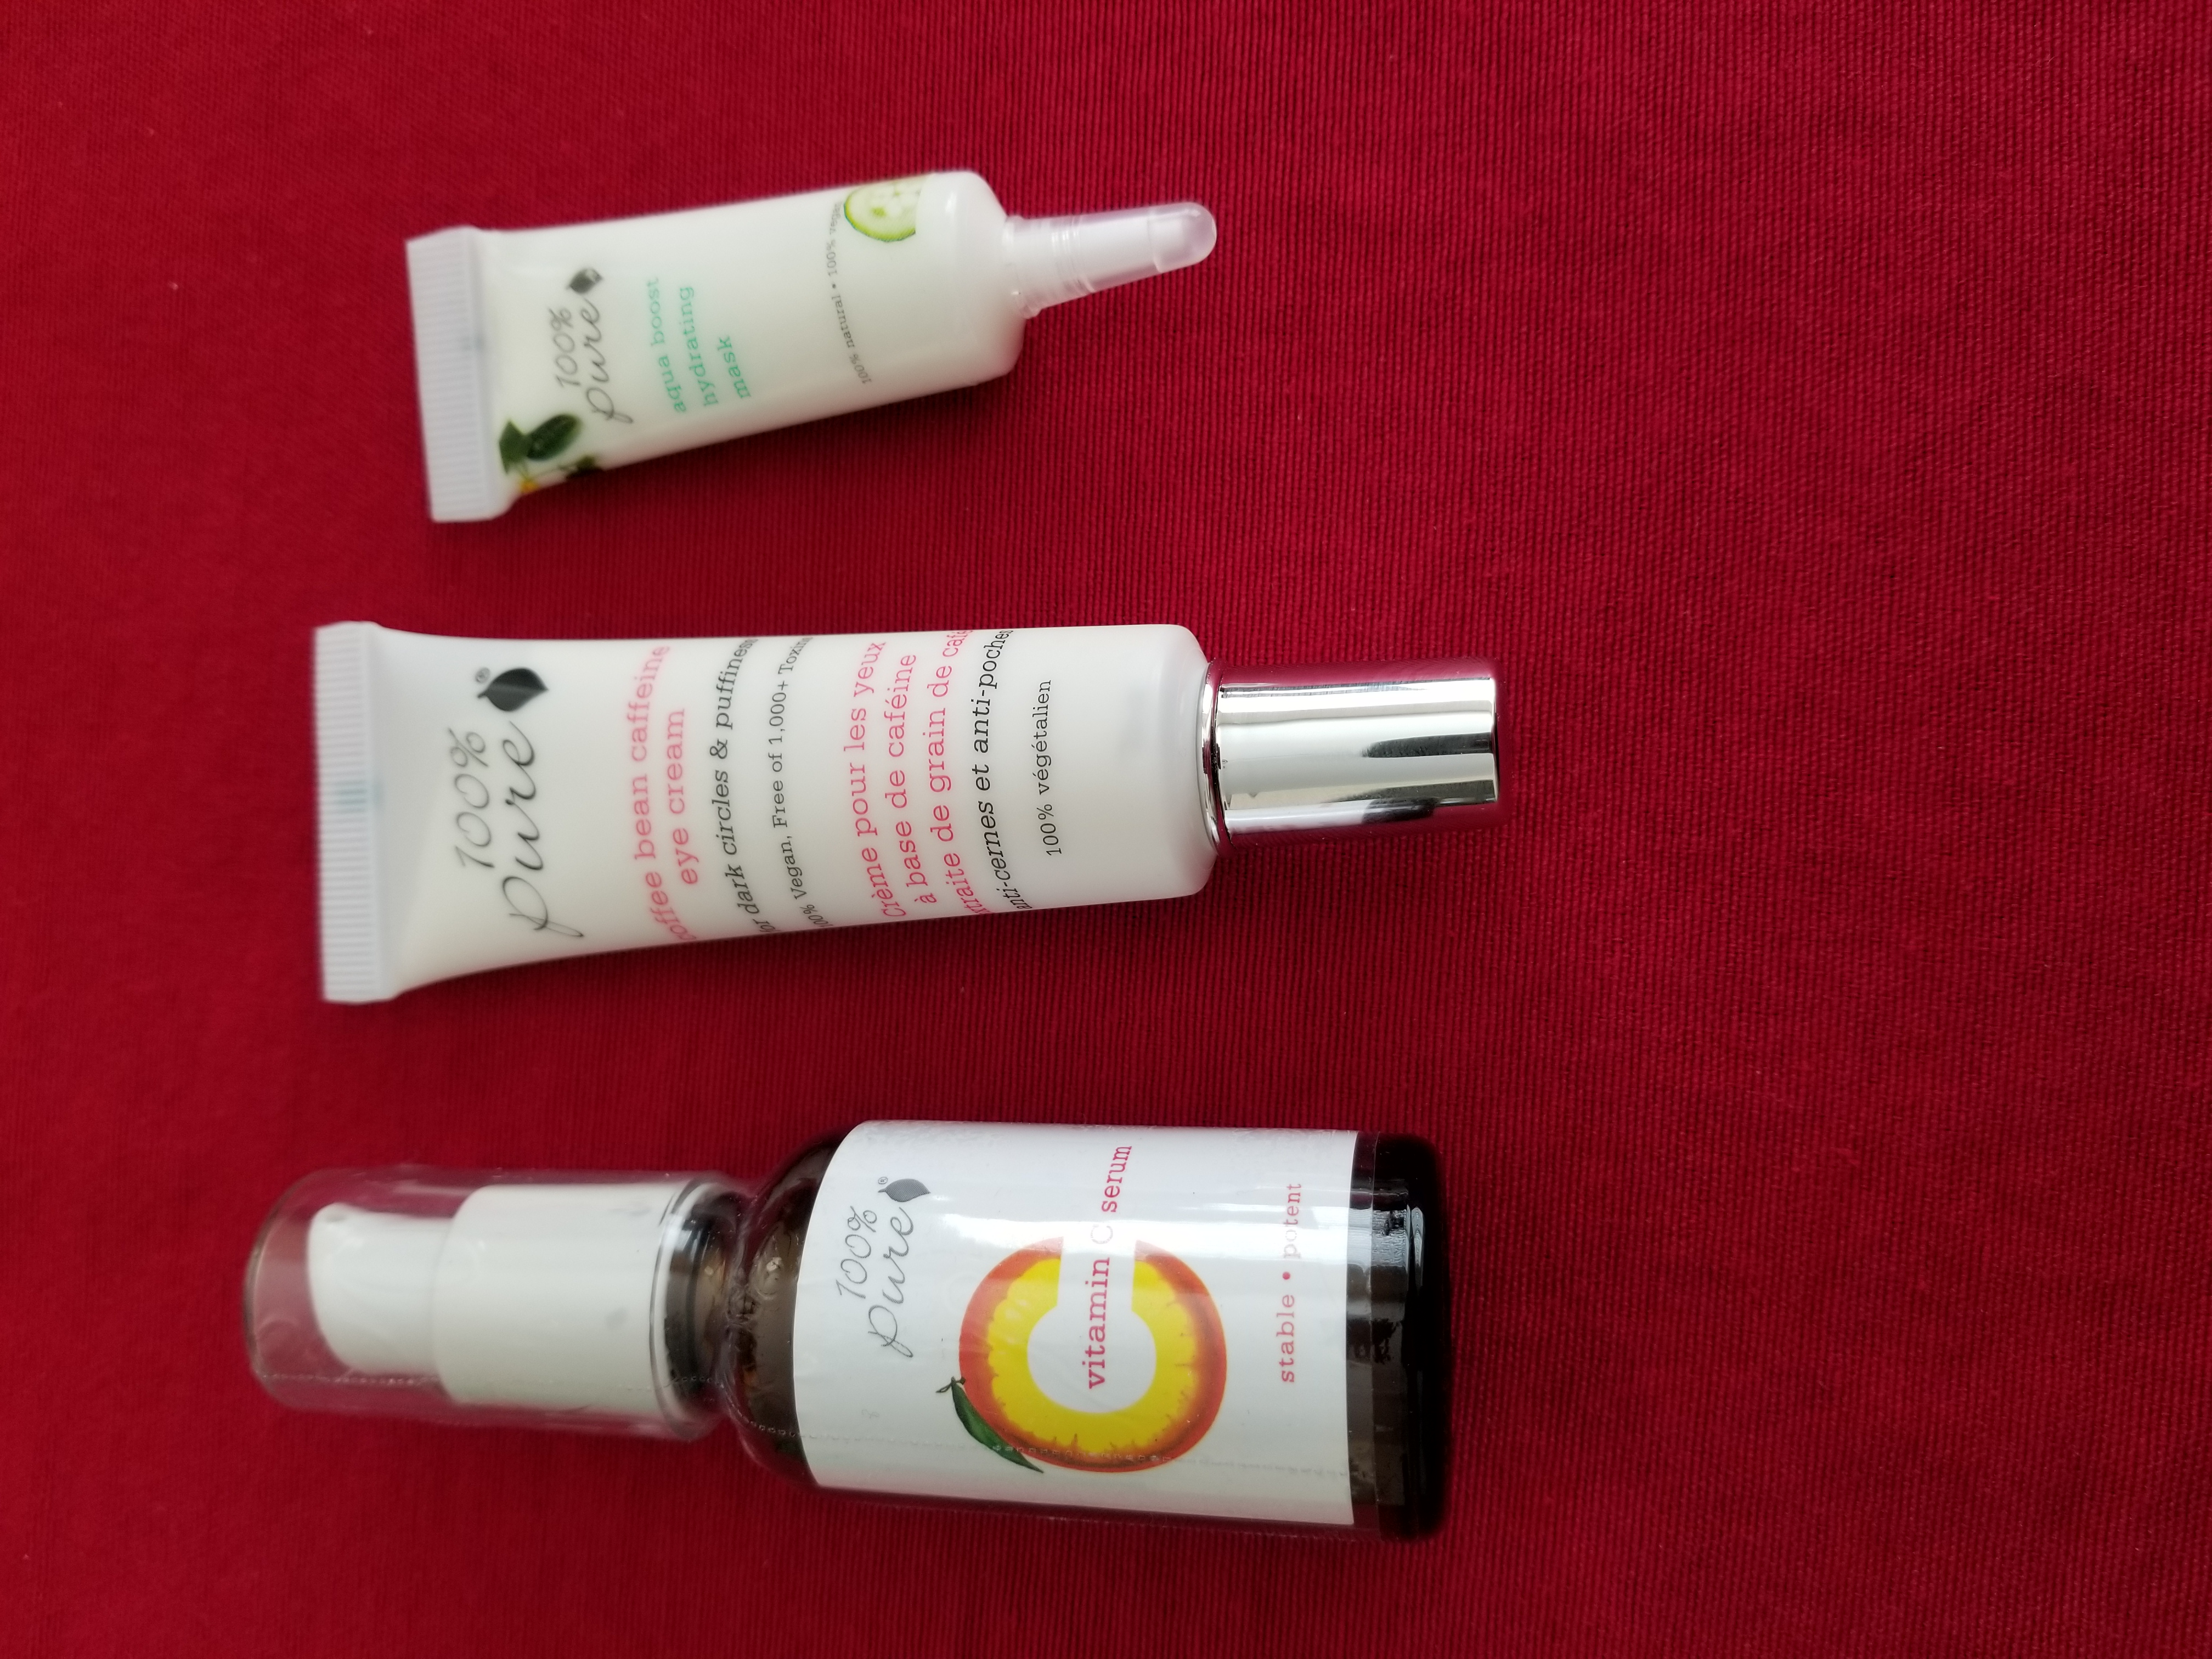 NEW! 100% Pure Vitamin C Serum & Coffee Bean eye Cream with Bonus Aqua Boost Mask